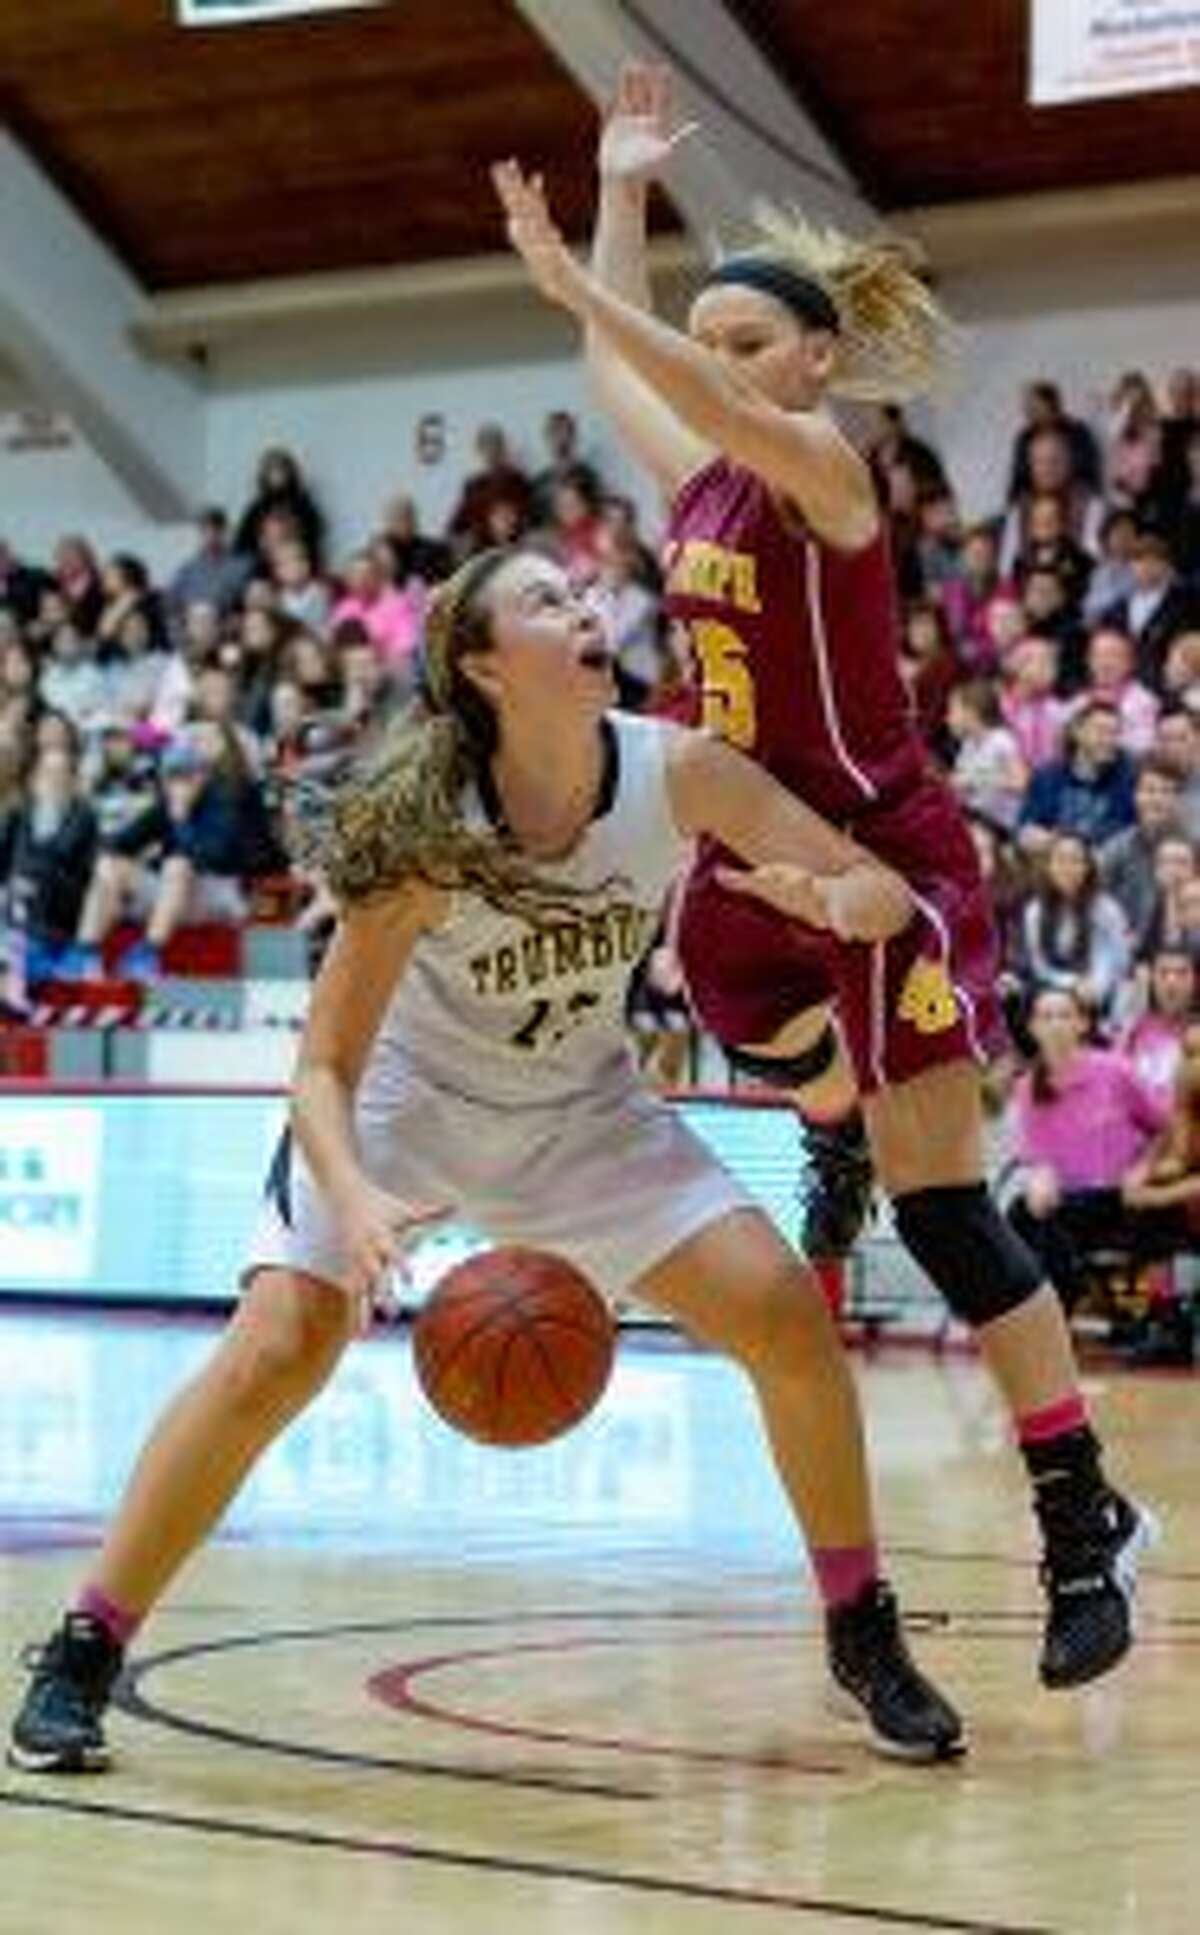 Claudia Tucci scored 1,008 points playing for the Lady Eagles.